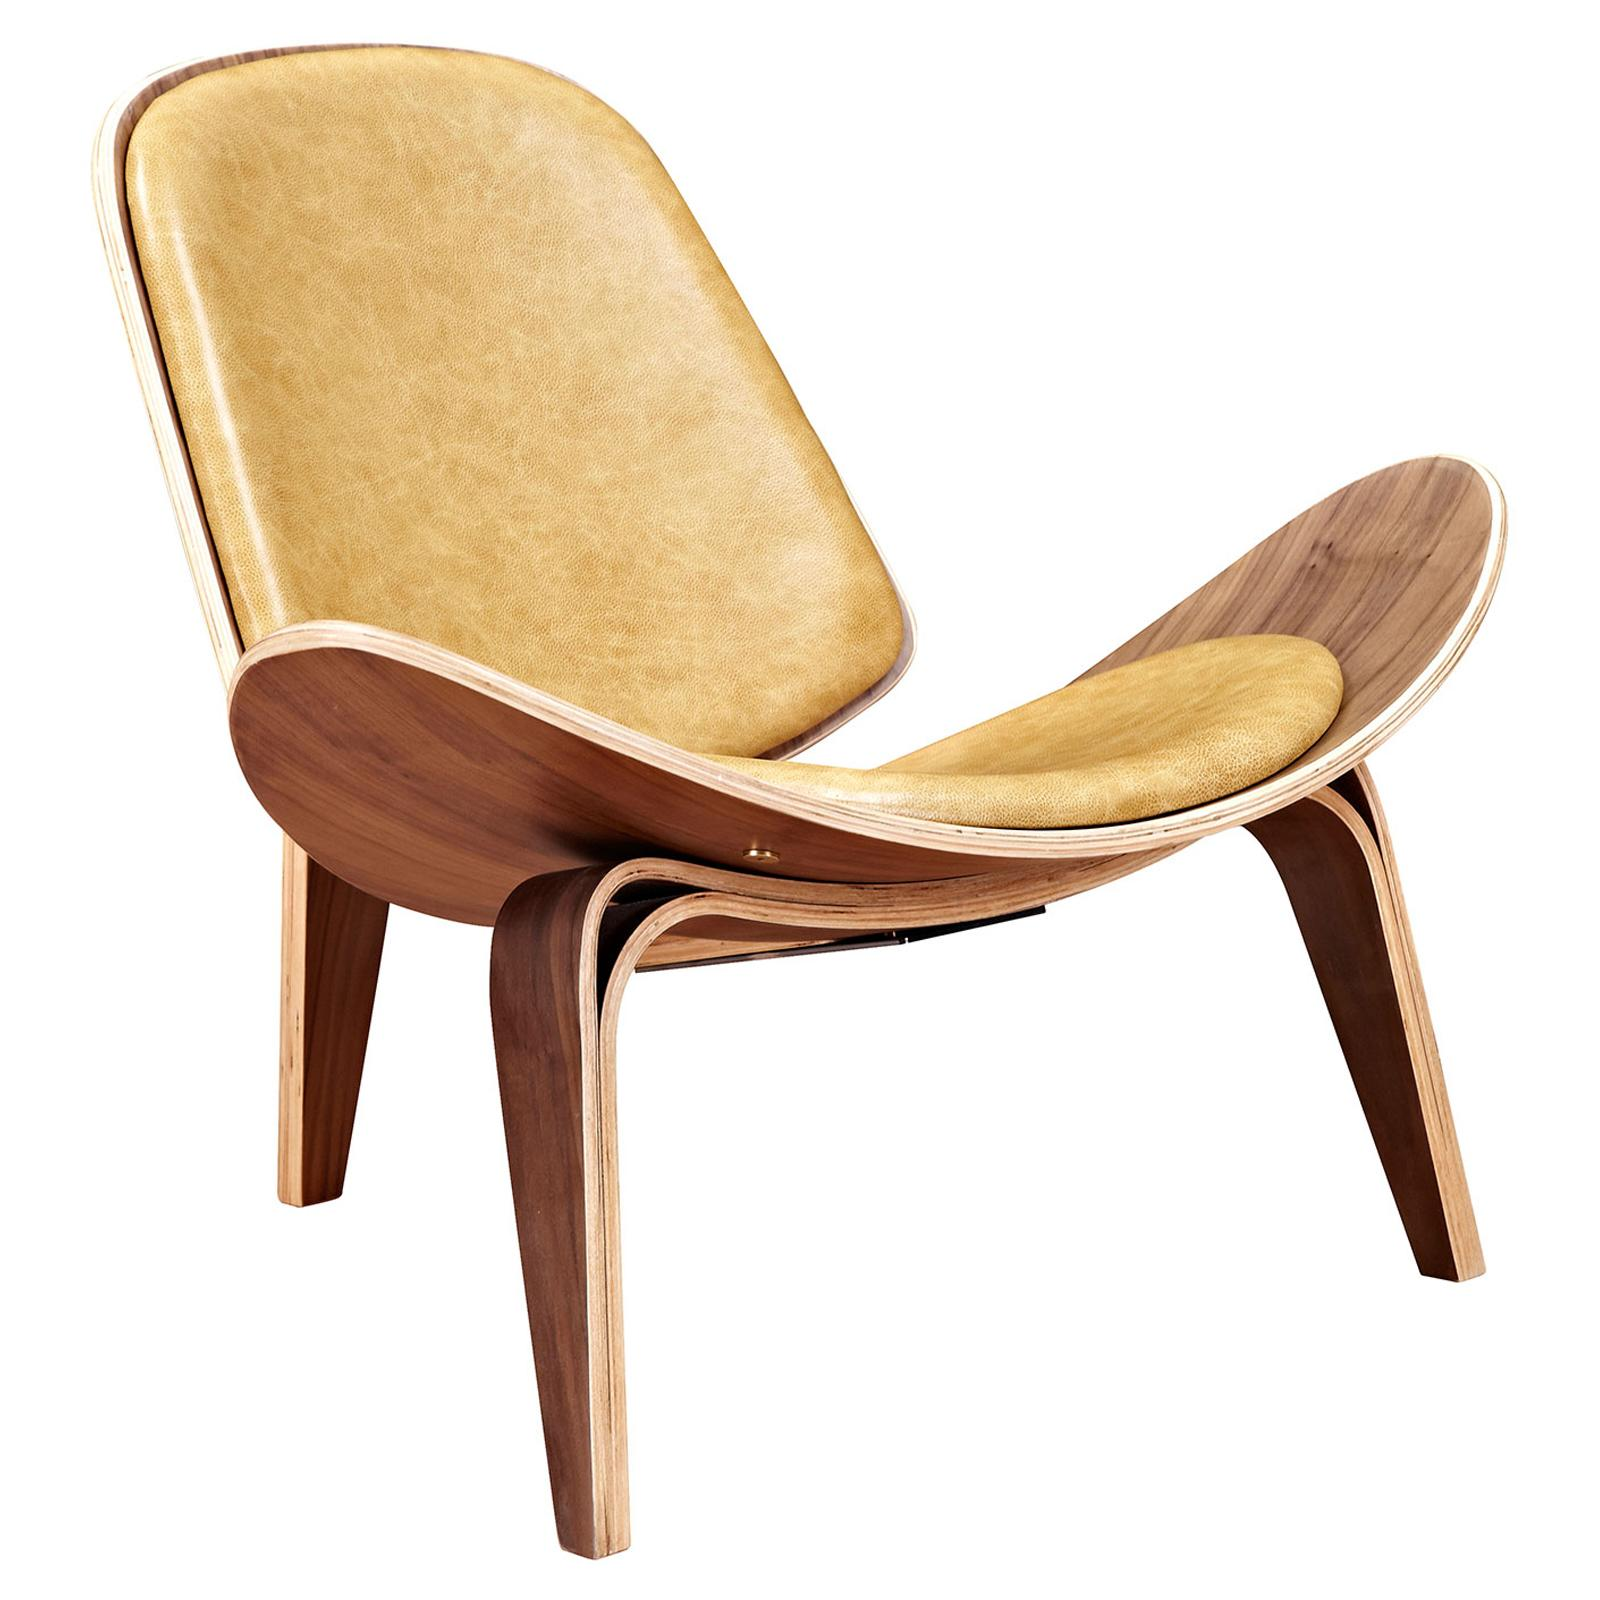 Nyekoncept Shell Leather Armless Chair Aged Maple - 224443-B